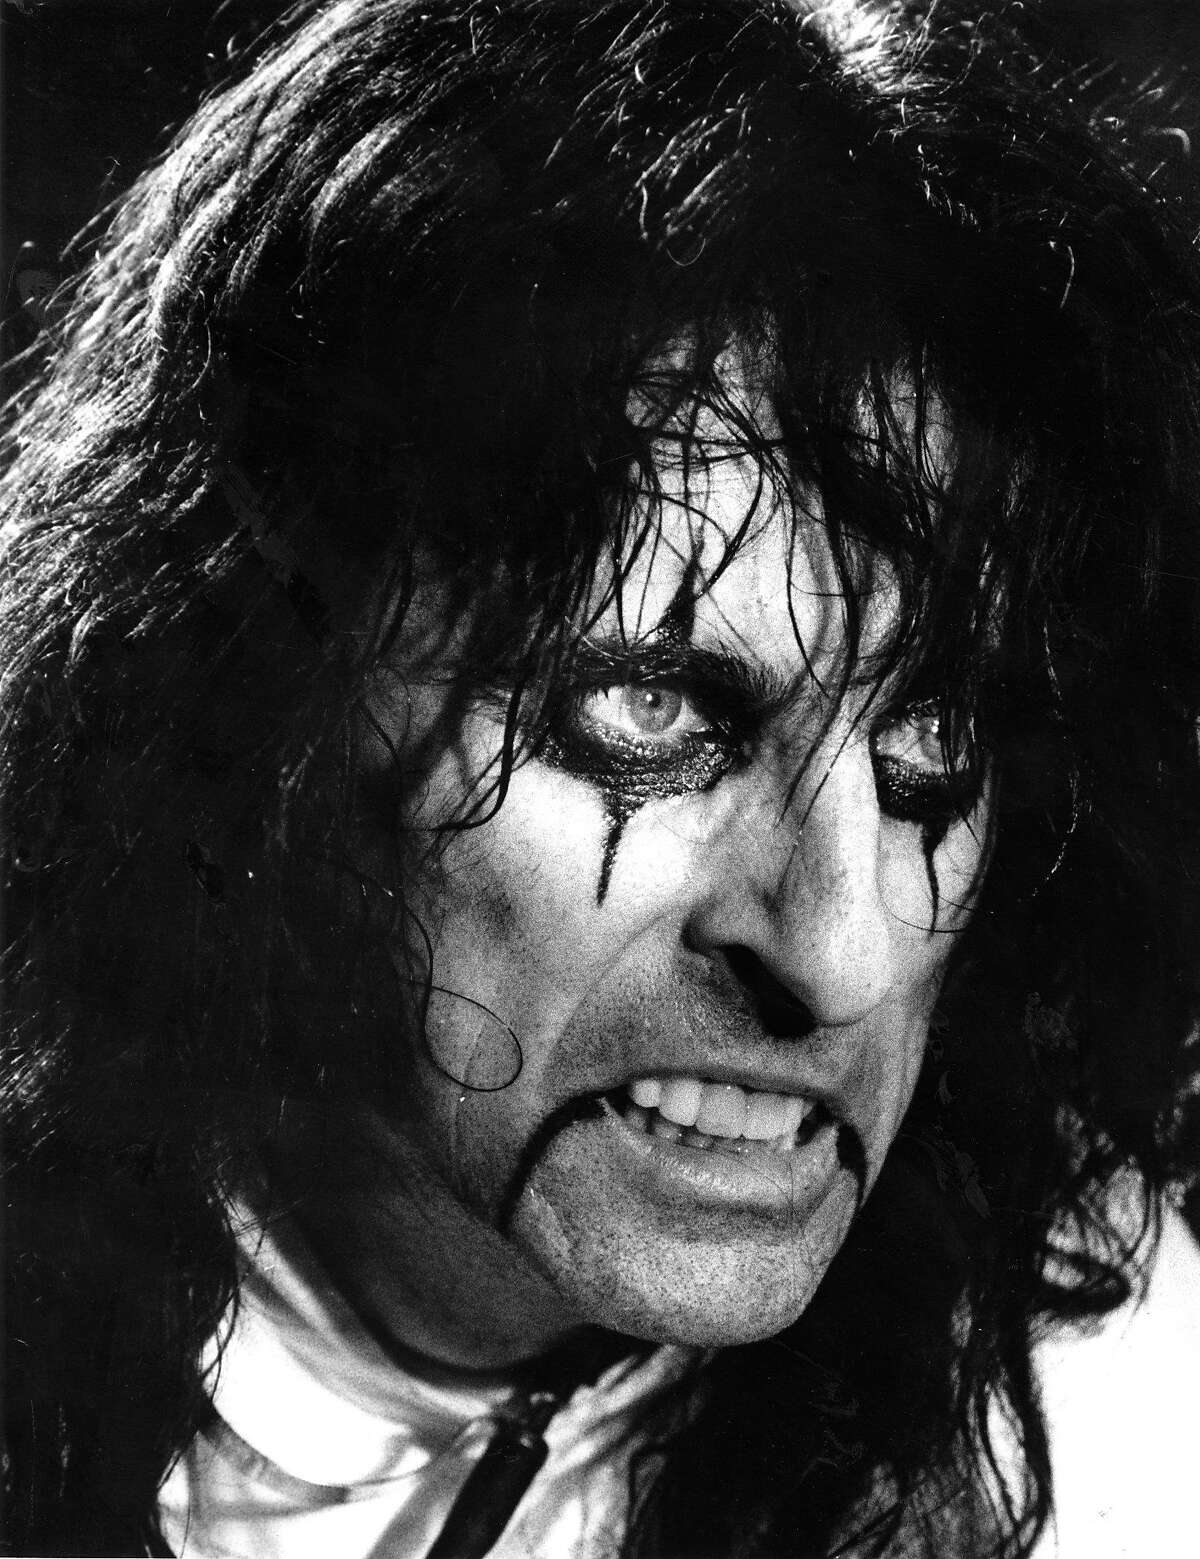 Singer Alice Cooper, at the Kaiser Center in Oakland January 27, 1987 Photo ran1/29/1987, P. 55 (batch 1)